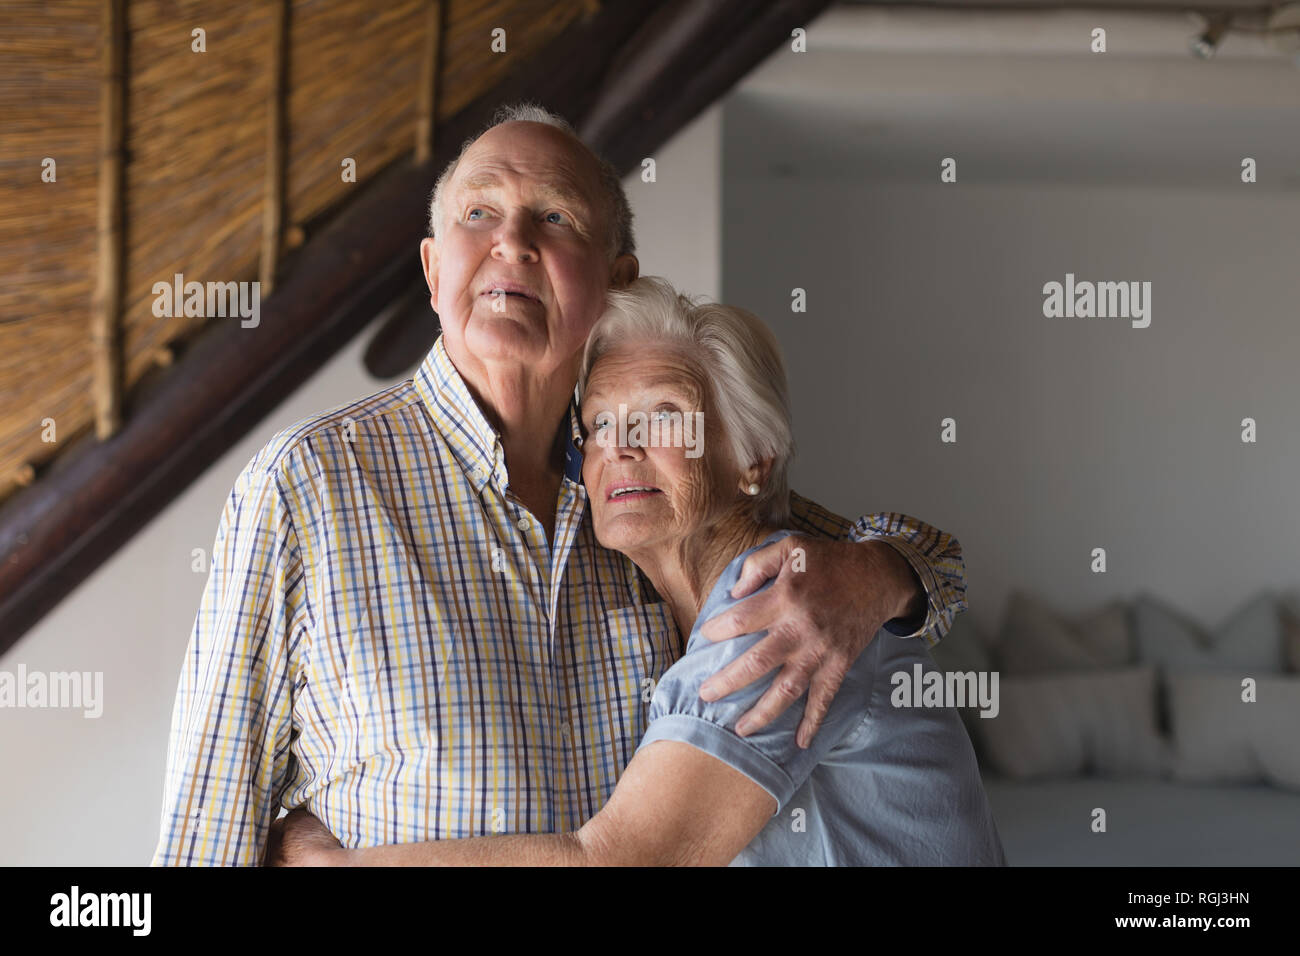 Front view of an active senior couple standing and looking away while embracing each other at home - Stock Image